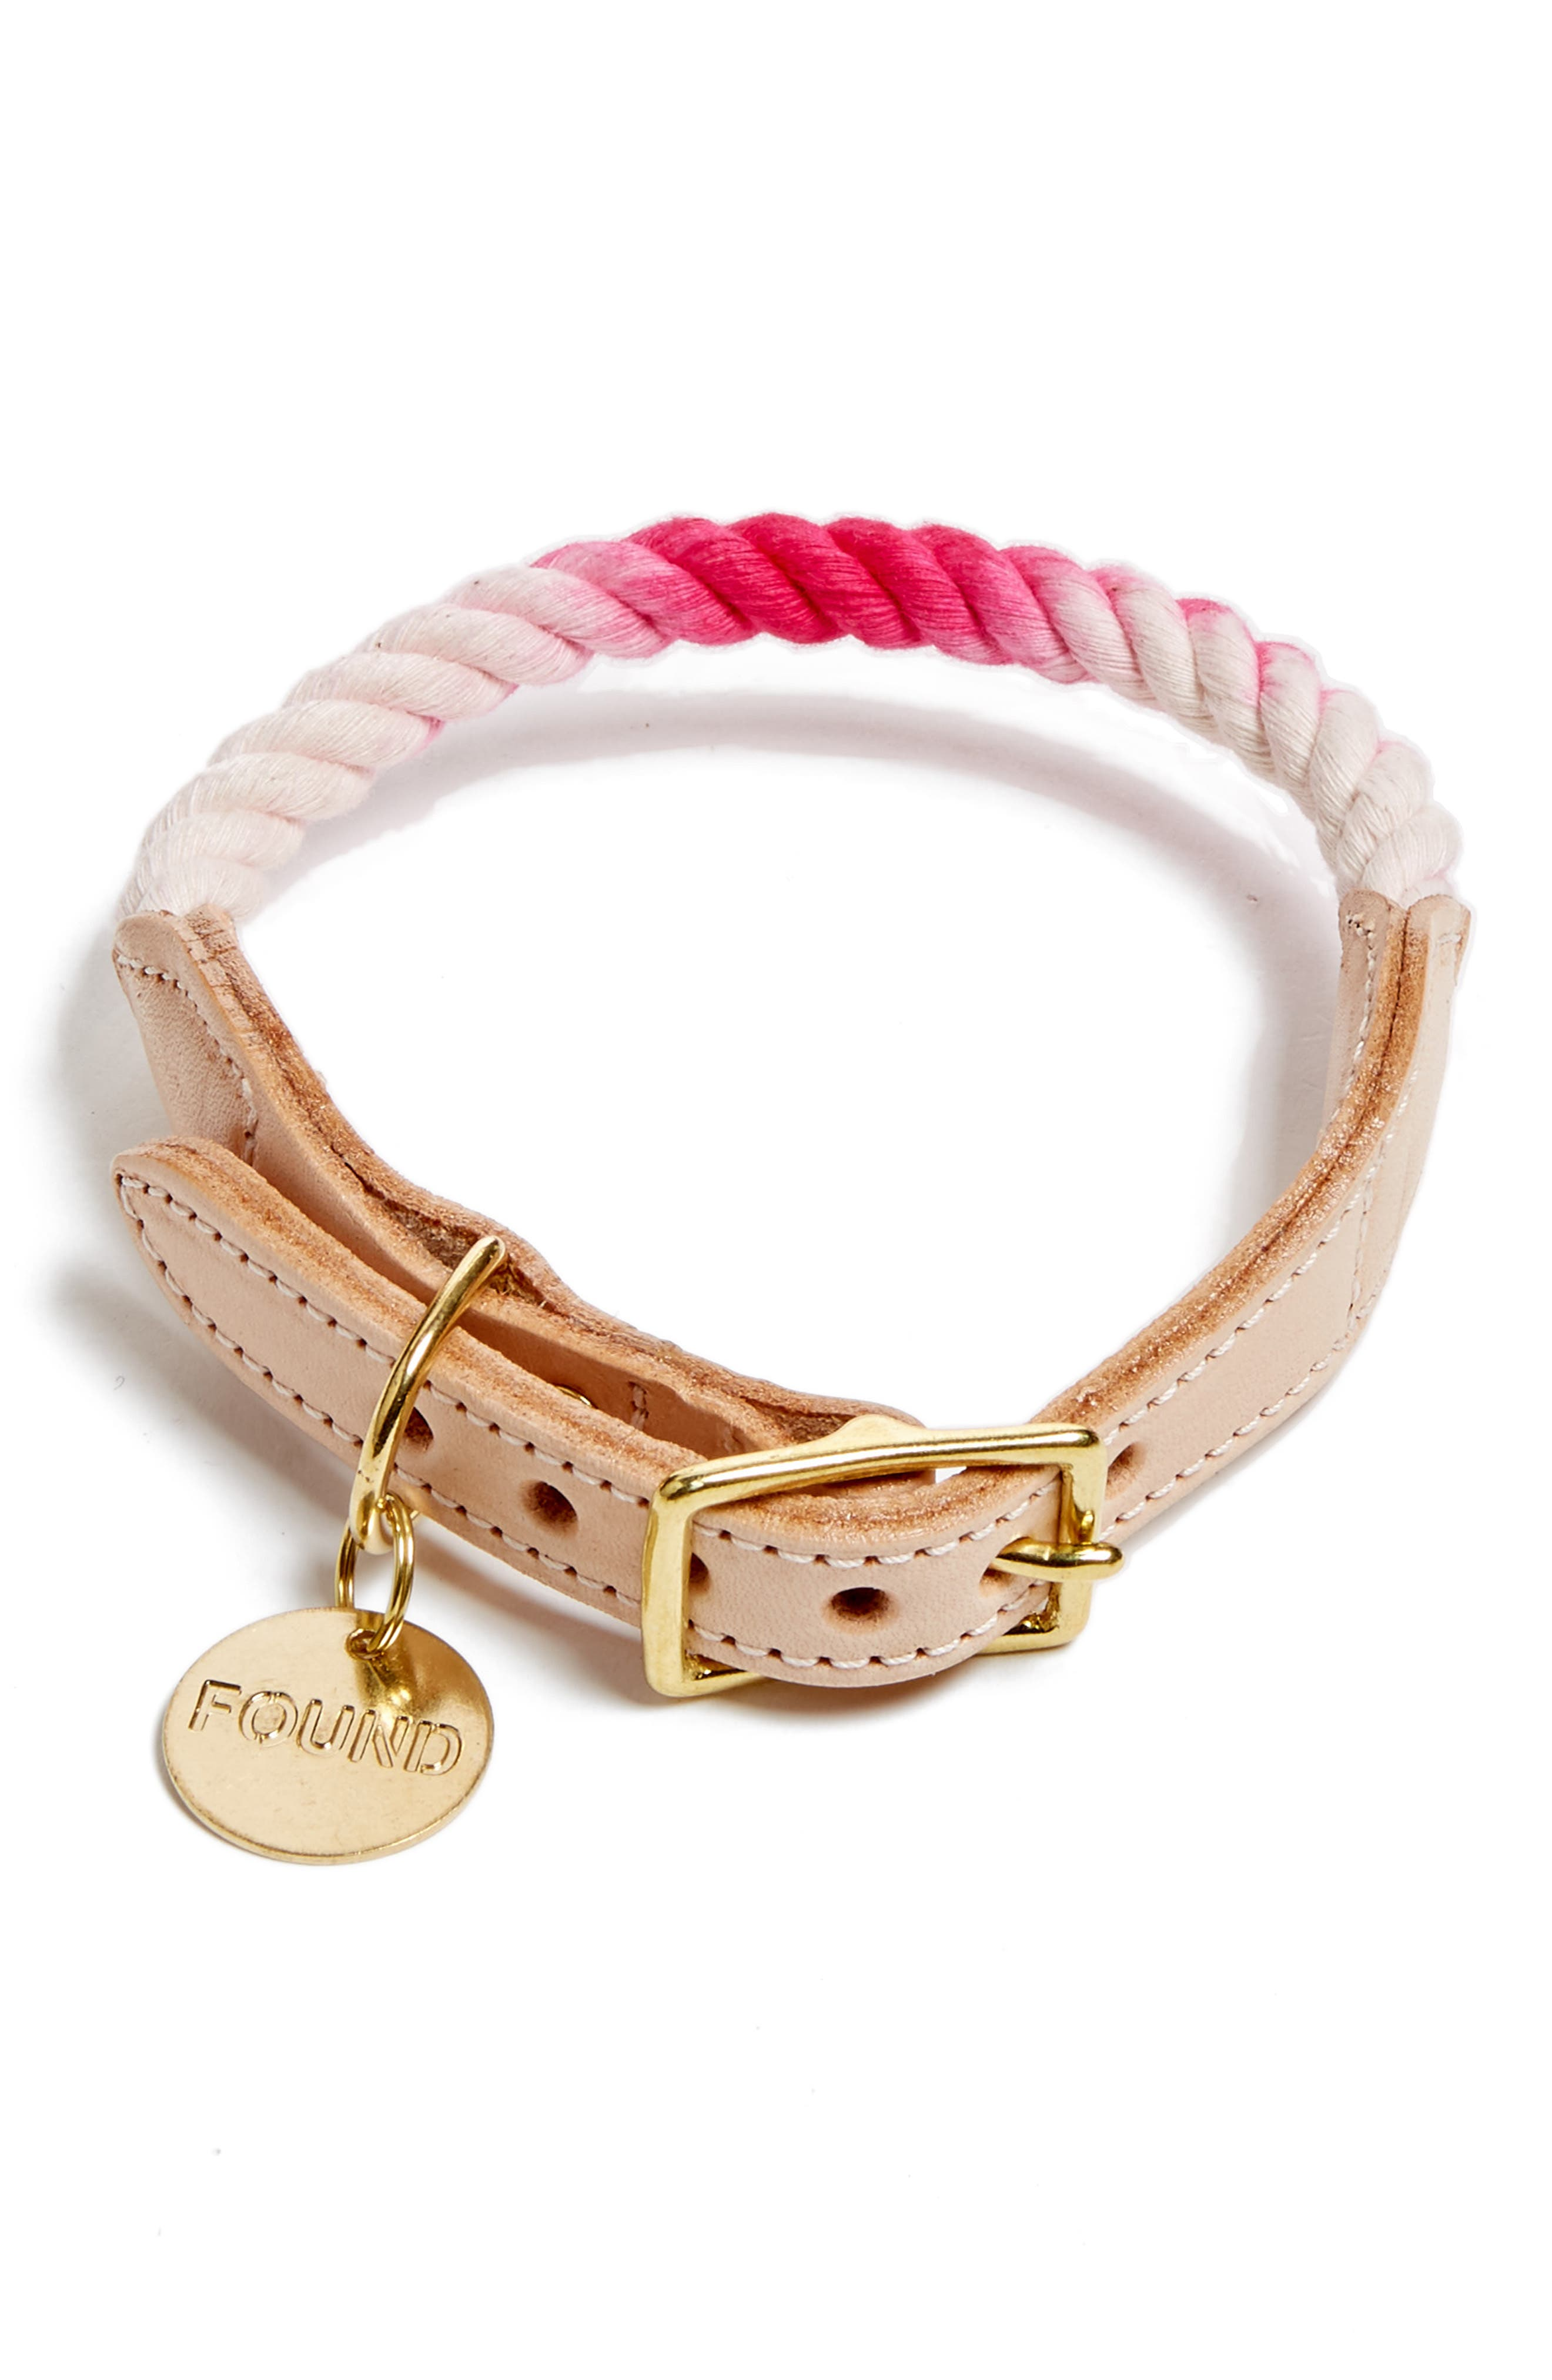 Rope & Leather Pet Collar,                         Main,                         color, 600